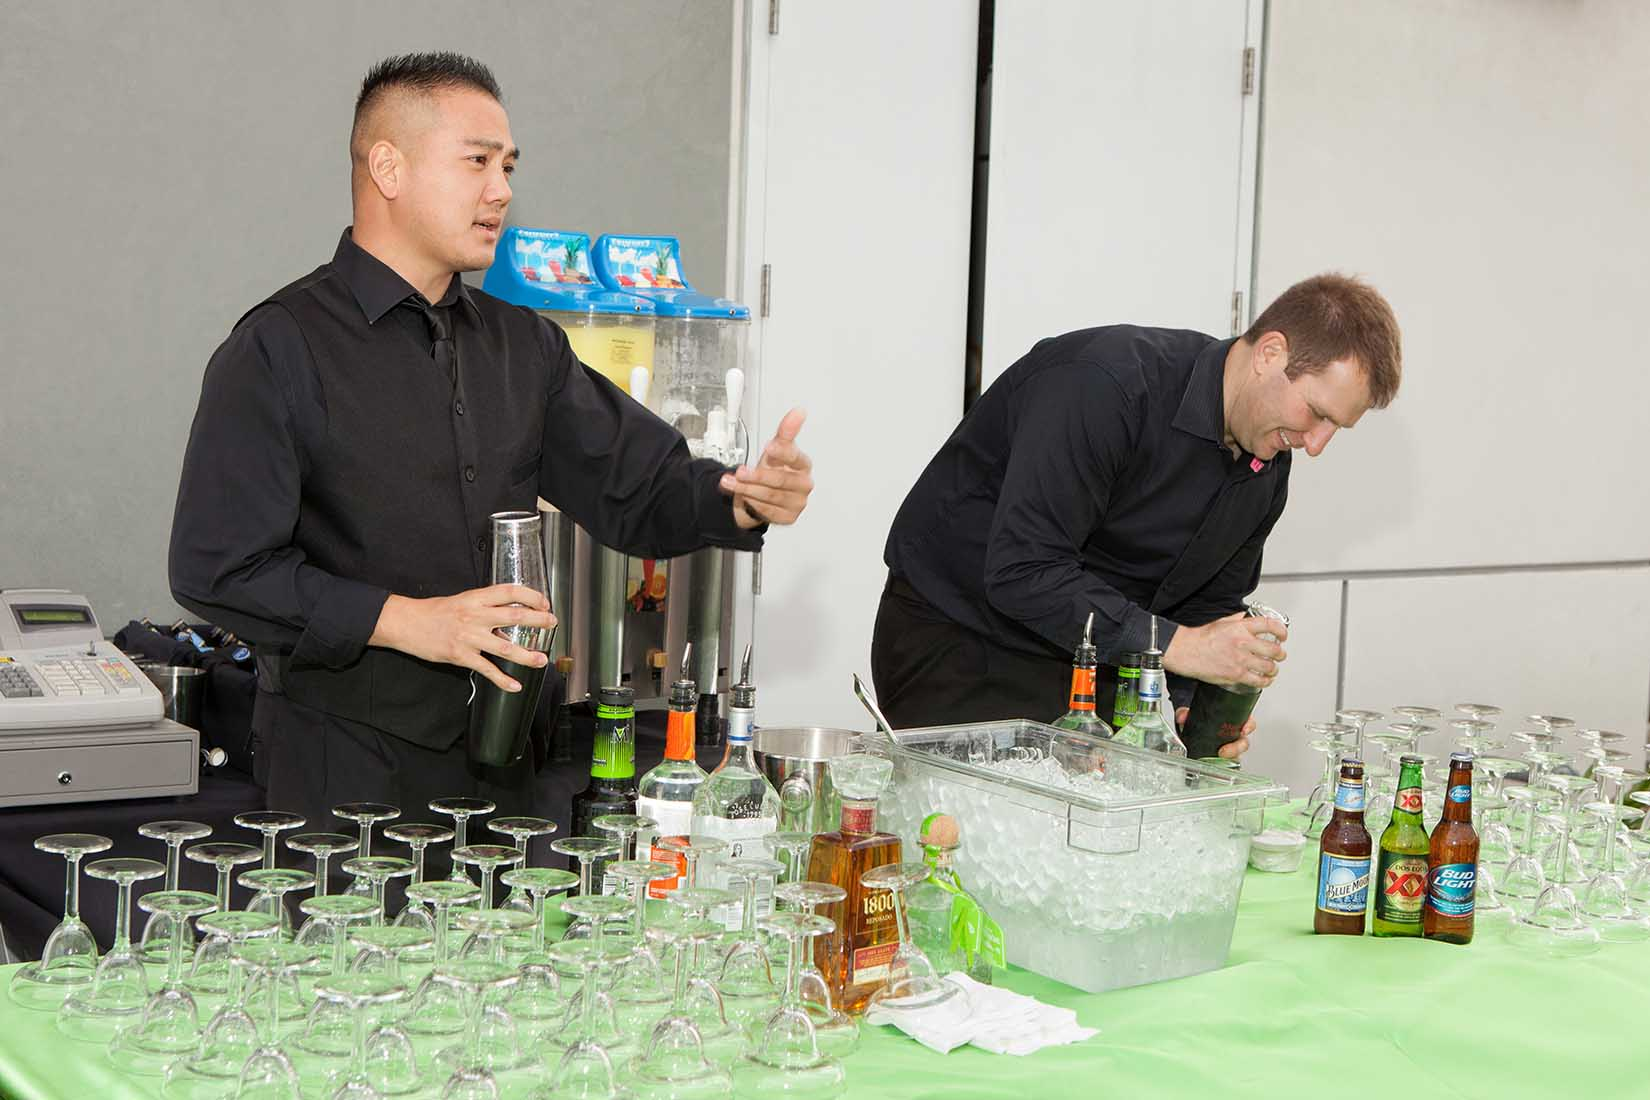 bartenders preparing drinks for the guests